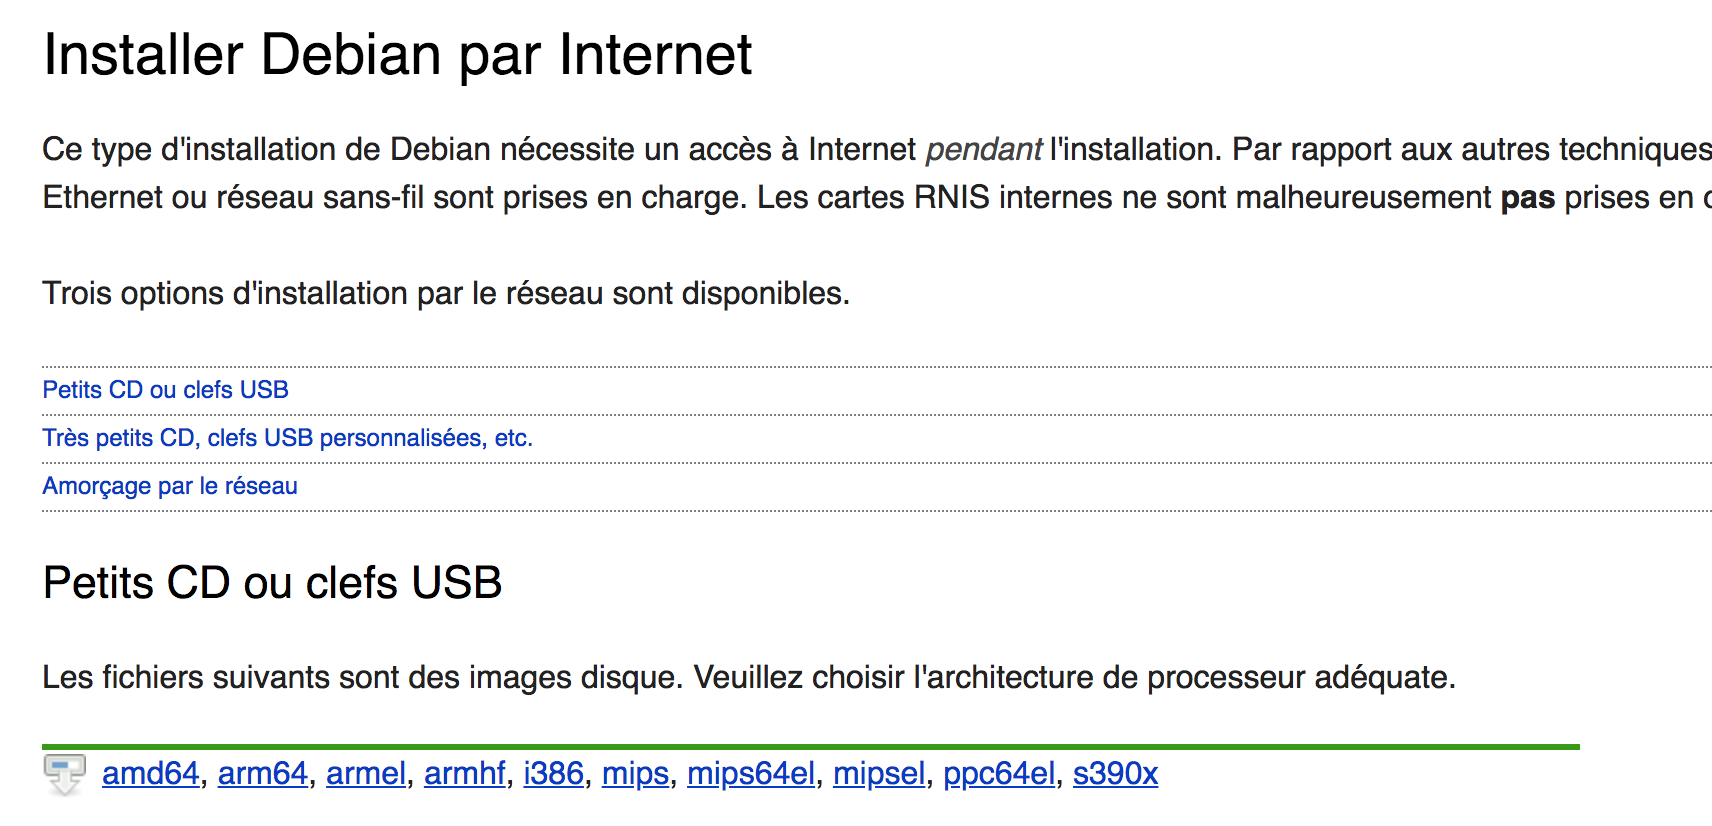 Installez Debian par internet